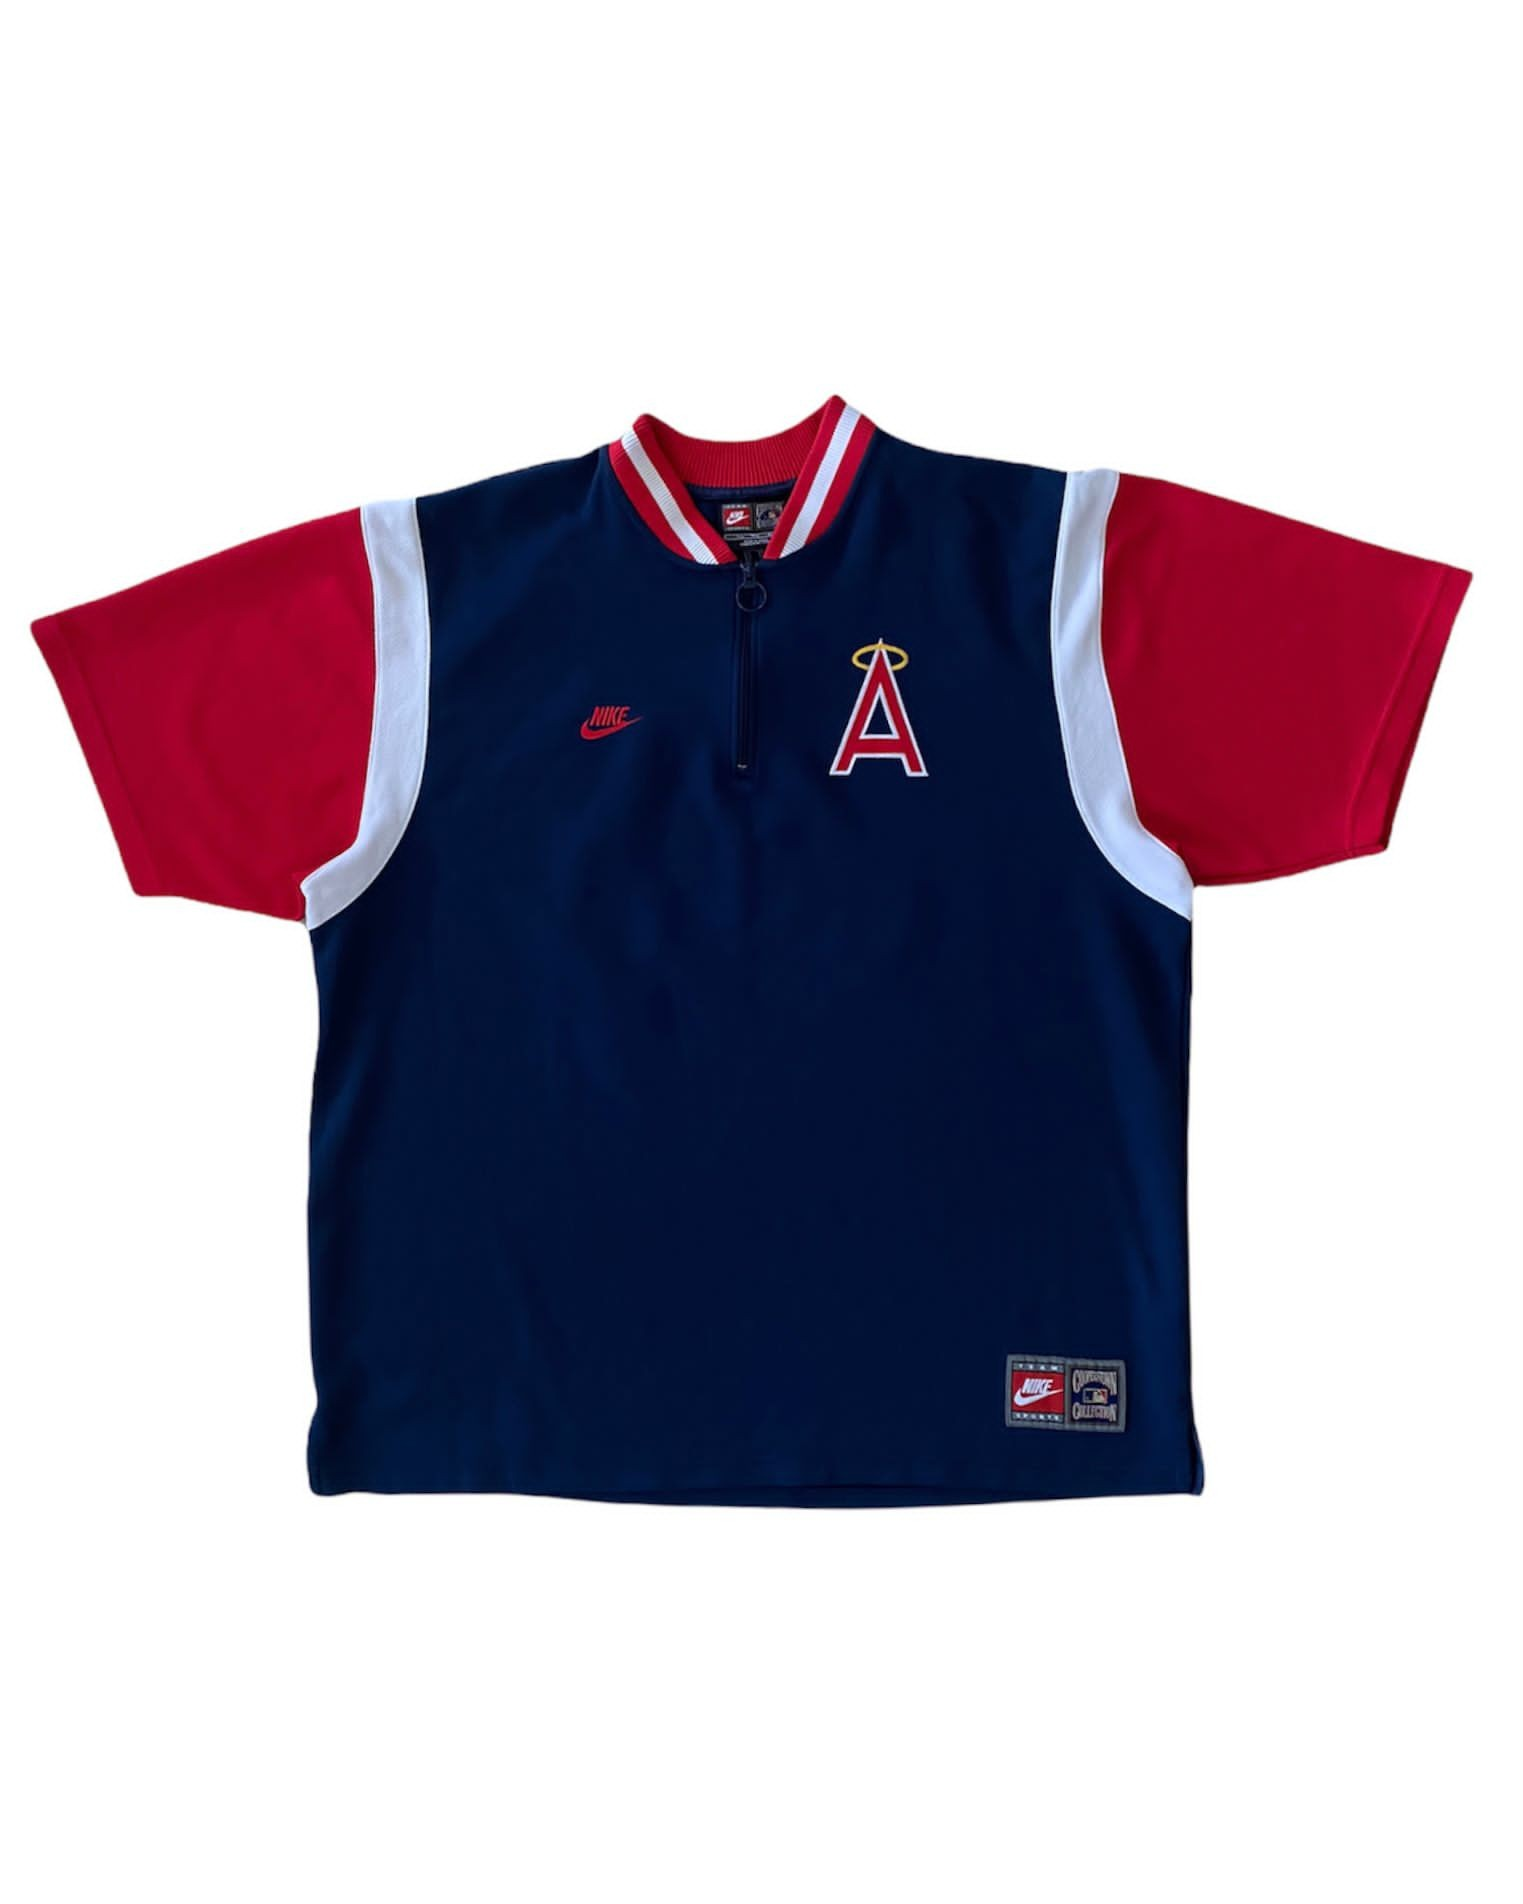 Nike 90's Cooperstown Collection Jersey (XXL)